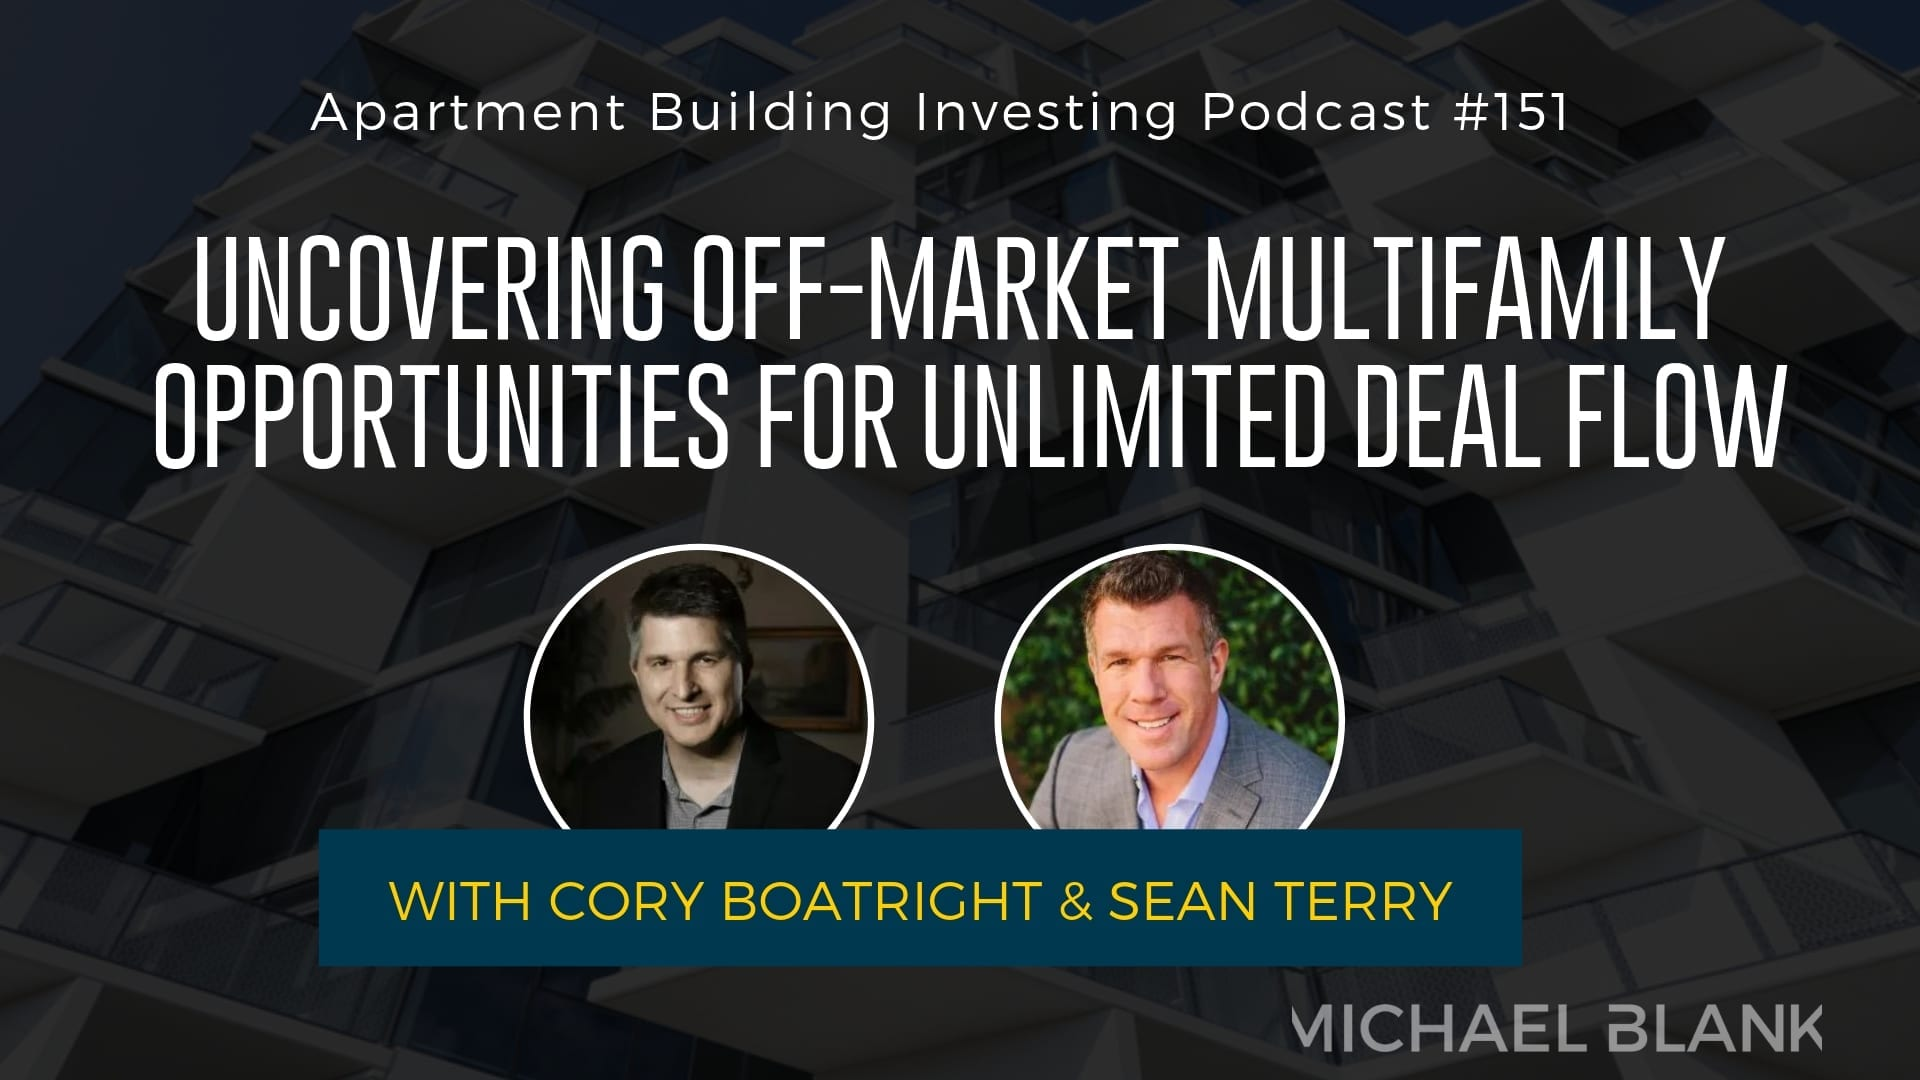 MB 151: Uncovering Off-Market Multifamily Opportunities for Unlimited Deal Flow – With Cory Boatright & Sean Terry